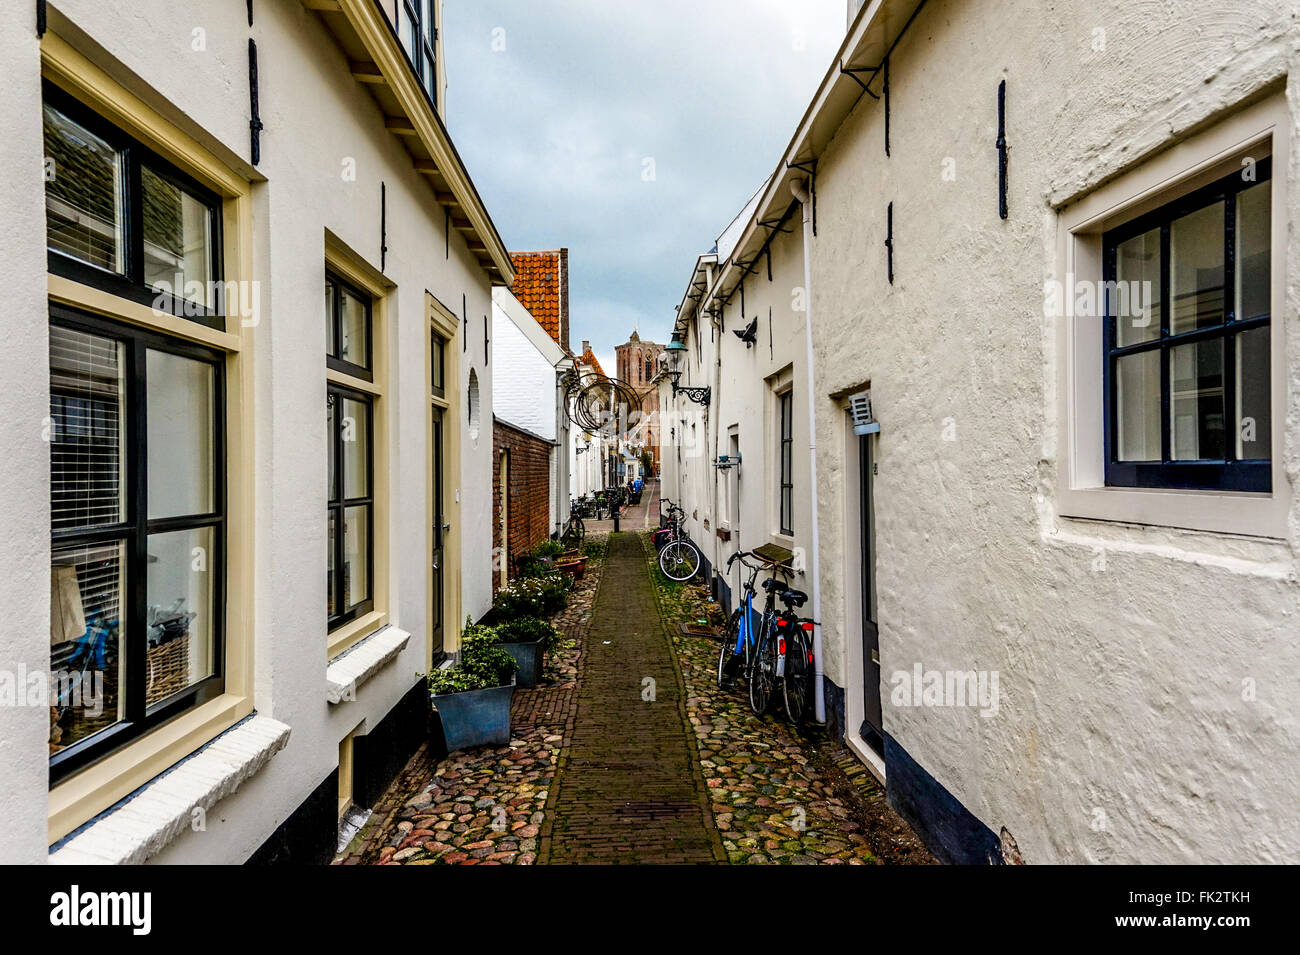 Bikes parked in a narrow street in the historic fishing village of Elburg in the Netherlands - Stock Image